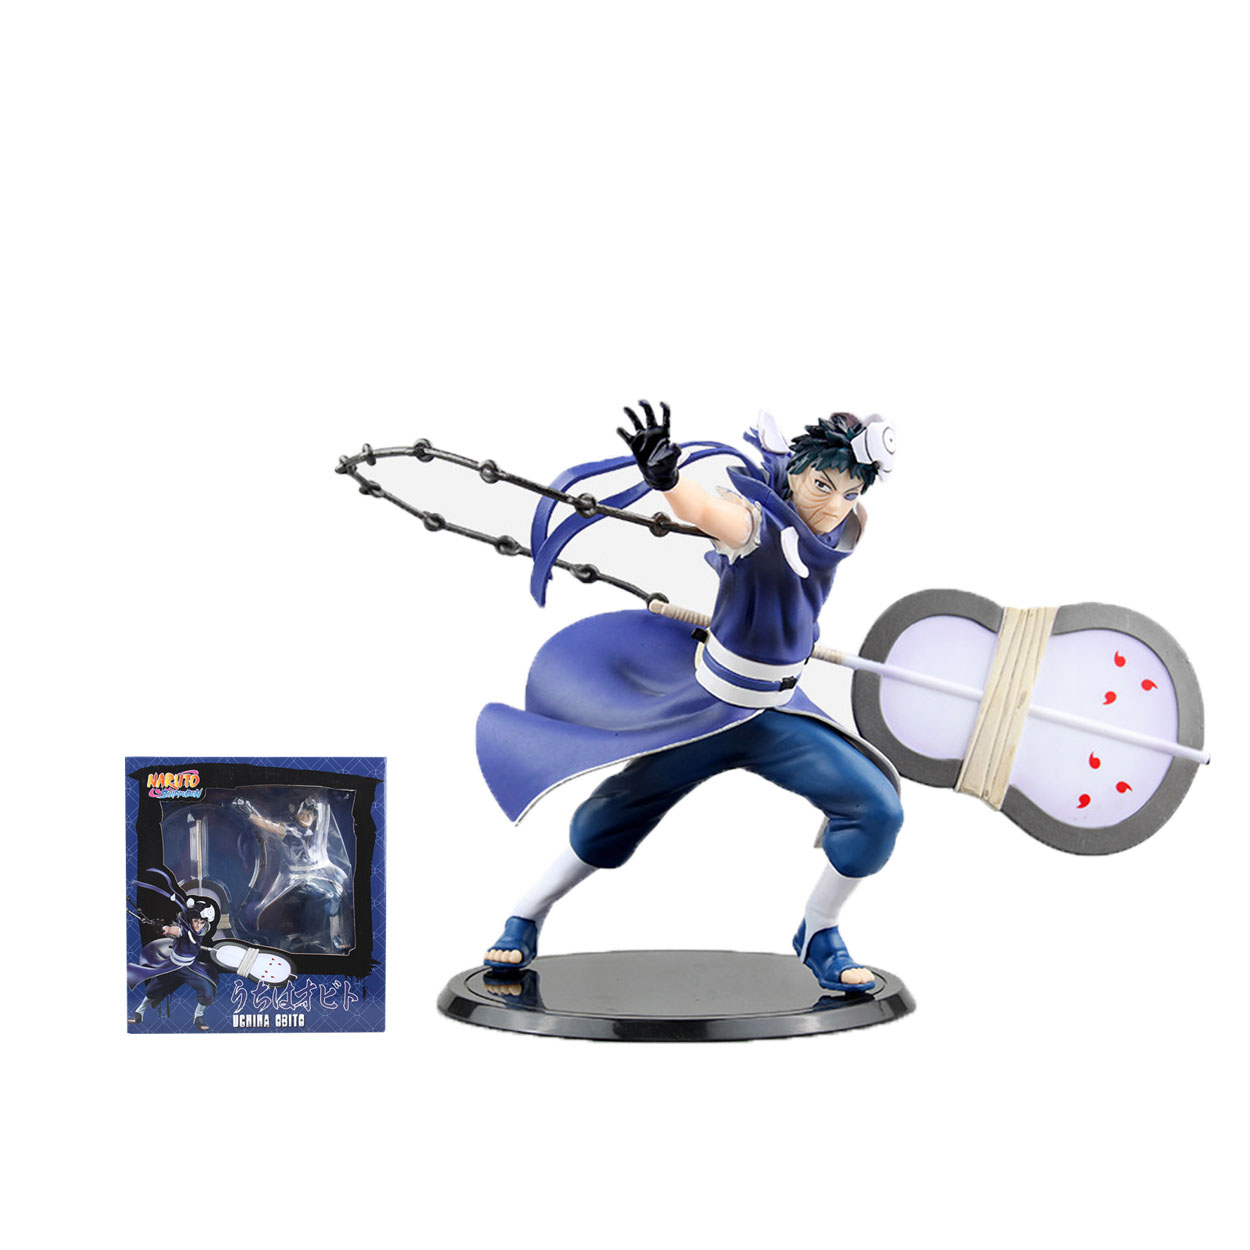 16CM <font><b>Naruto</b></font> <font><b>Uchiha</b></font> <font><b>Obito</b></font> XTRA <font><b>PVC</b></font> <font><b>Action</b></font> <font><b>Figure</b></font> Kid Gift Doll Fan Collection Uzumaki <font><b>Naruto</b></font> <font><b>PVC</b></font> <font><b>Action</b></font> <font><b>Figure</b></font> <font><b>Anime</b></font> Model Toys